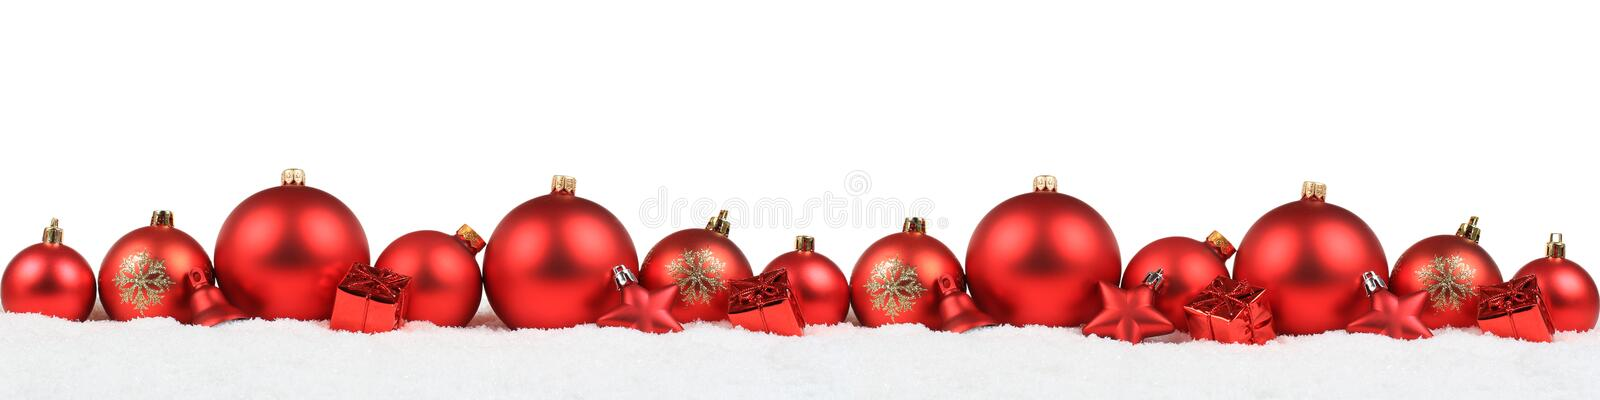 Christmas balls banner red decoration background snow winter iso stock photos